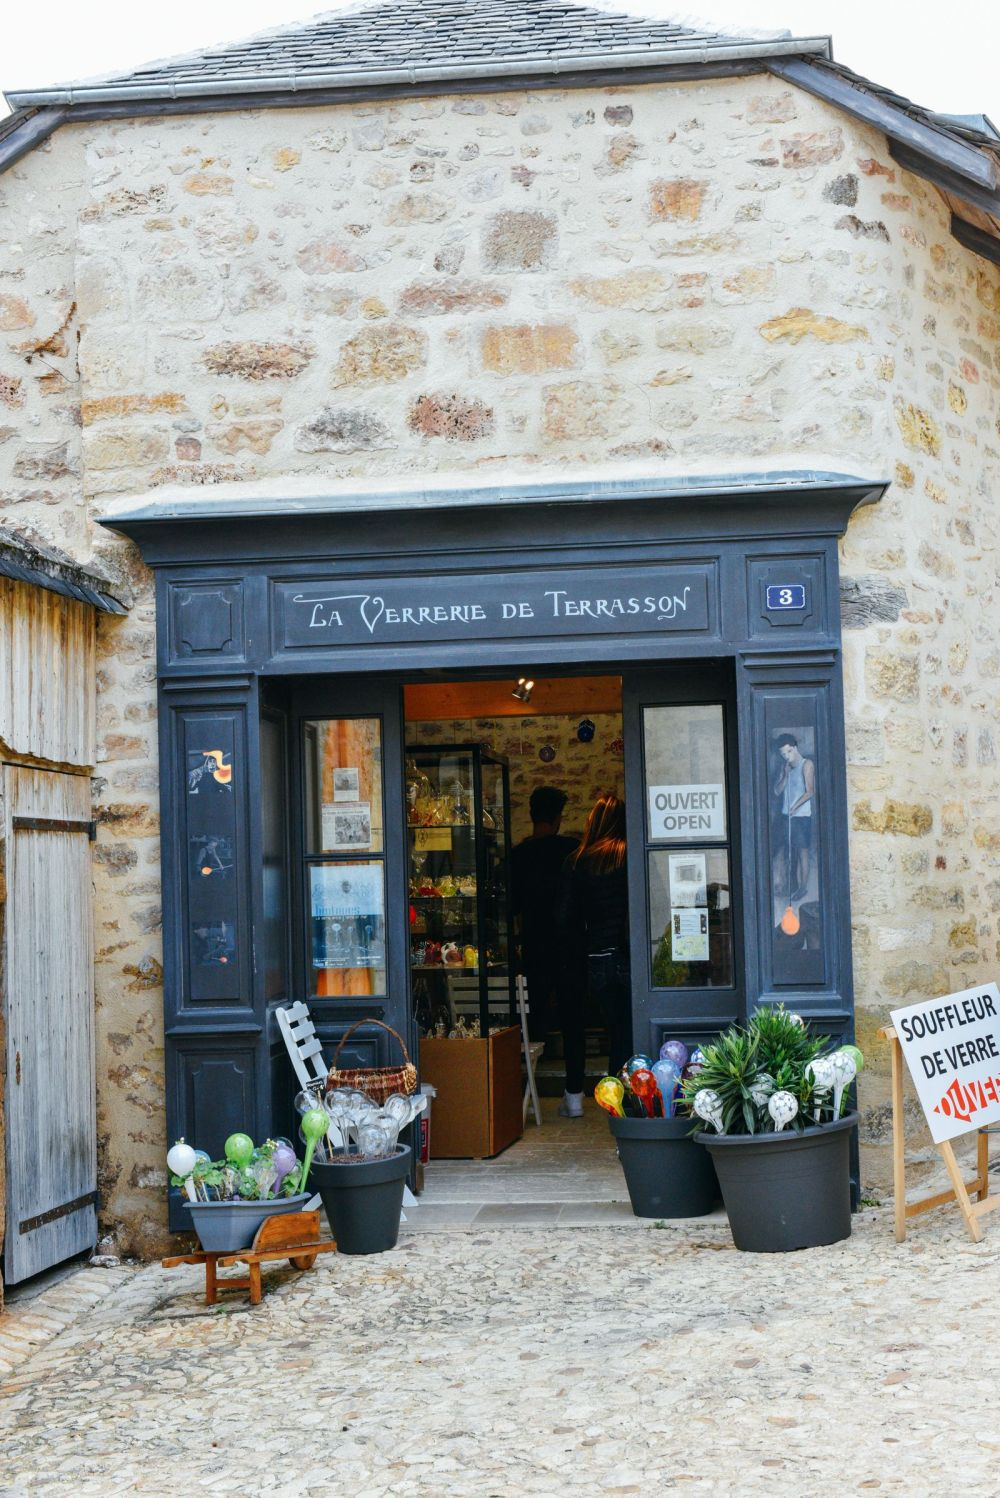 10 Things You Need To Know About Visiting The Dordogne Valley In France For The First Time! (18)